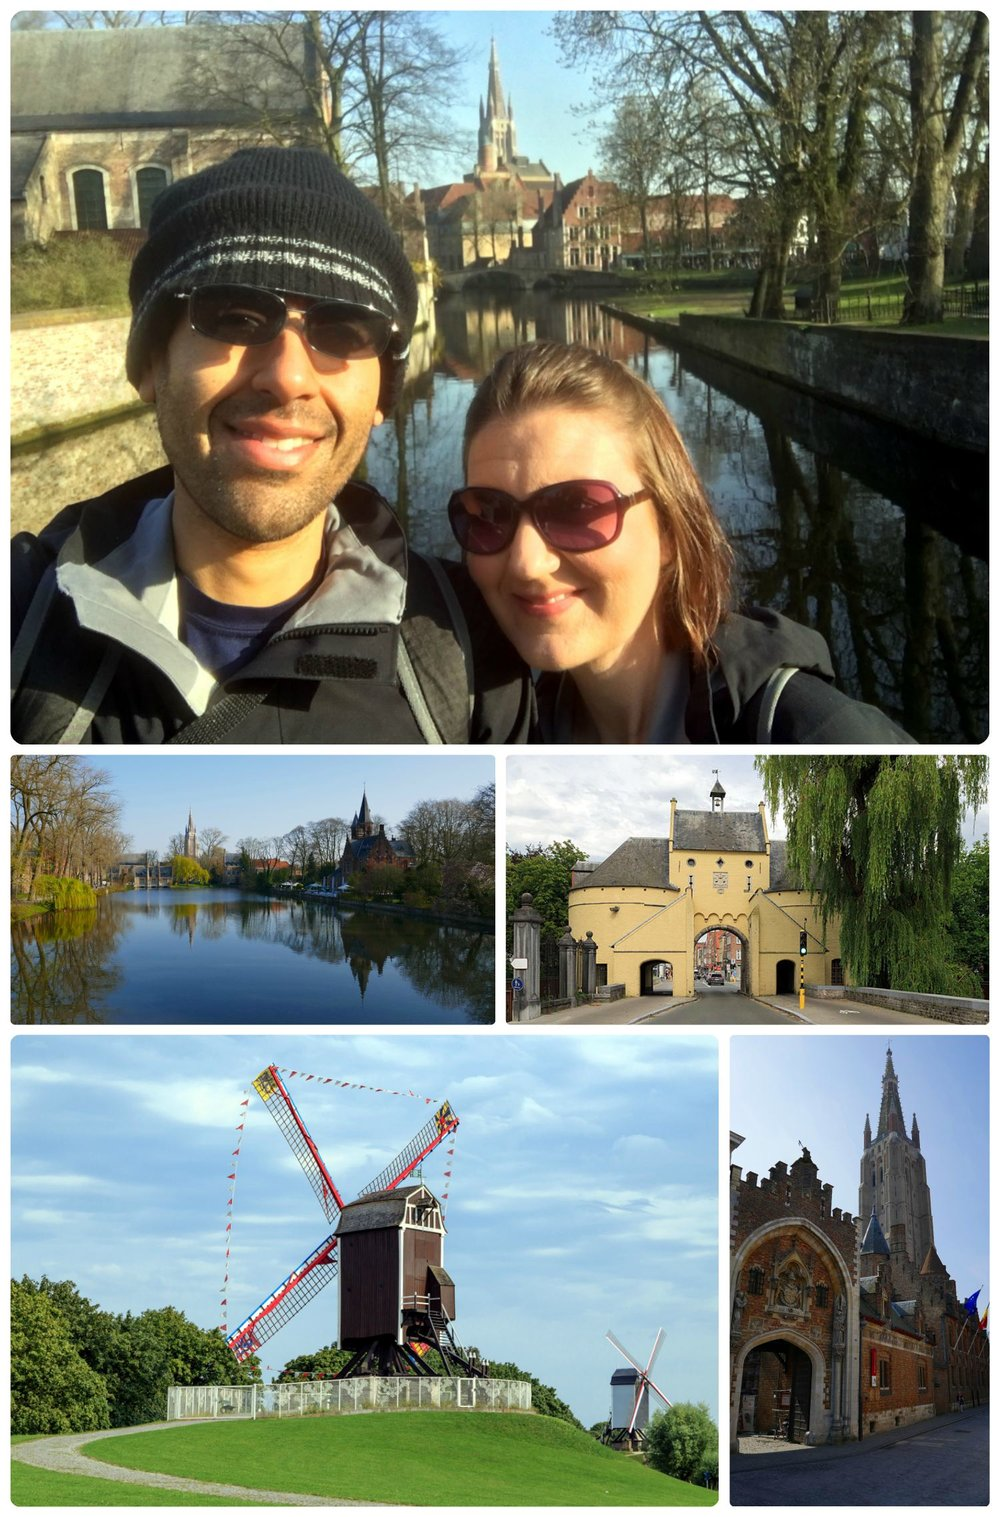 Bruges, Belgium. Clockwise (from the top left): Us on the bridge over the 'Lake of Love' at Minnewaterpark, Smedenpoort Gate, Windmills, view of Church of Our Lady from Nieuwstraat street.